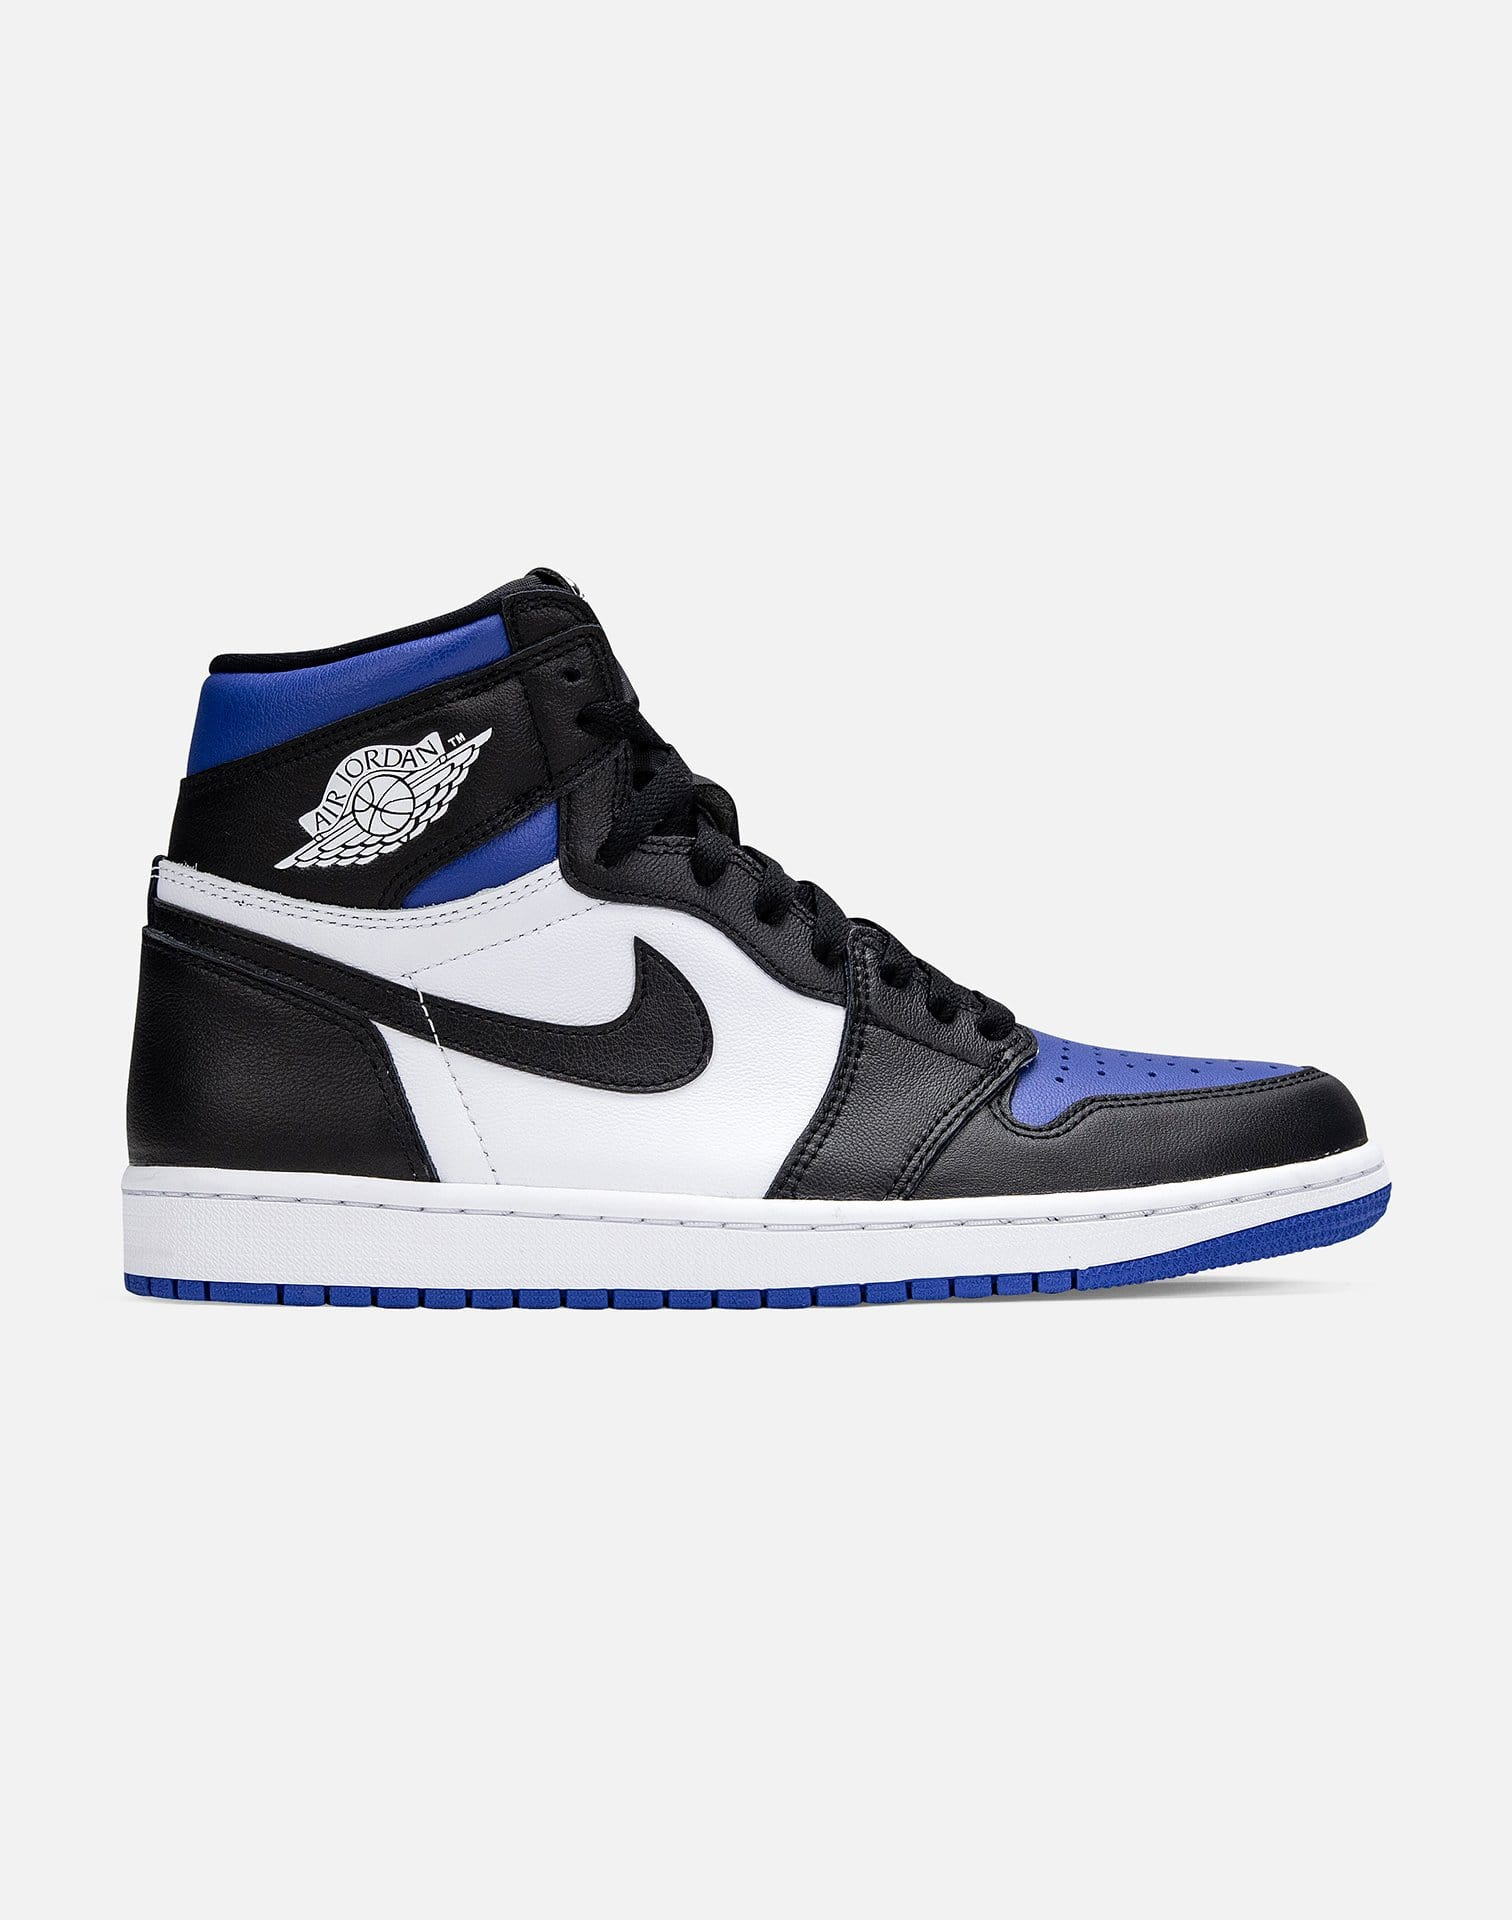 Jordan AIR JORDAN RETRO 1 HIGH OG 'ROYAL TOE'